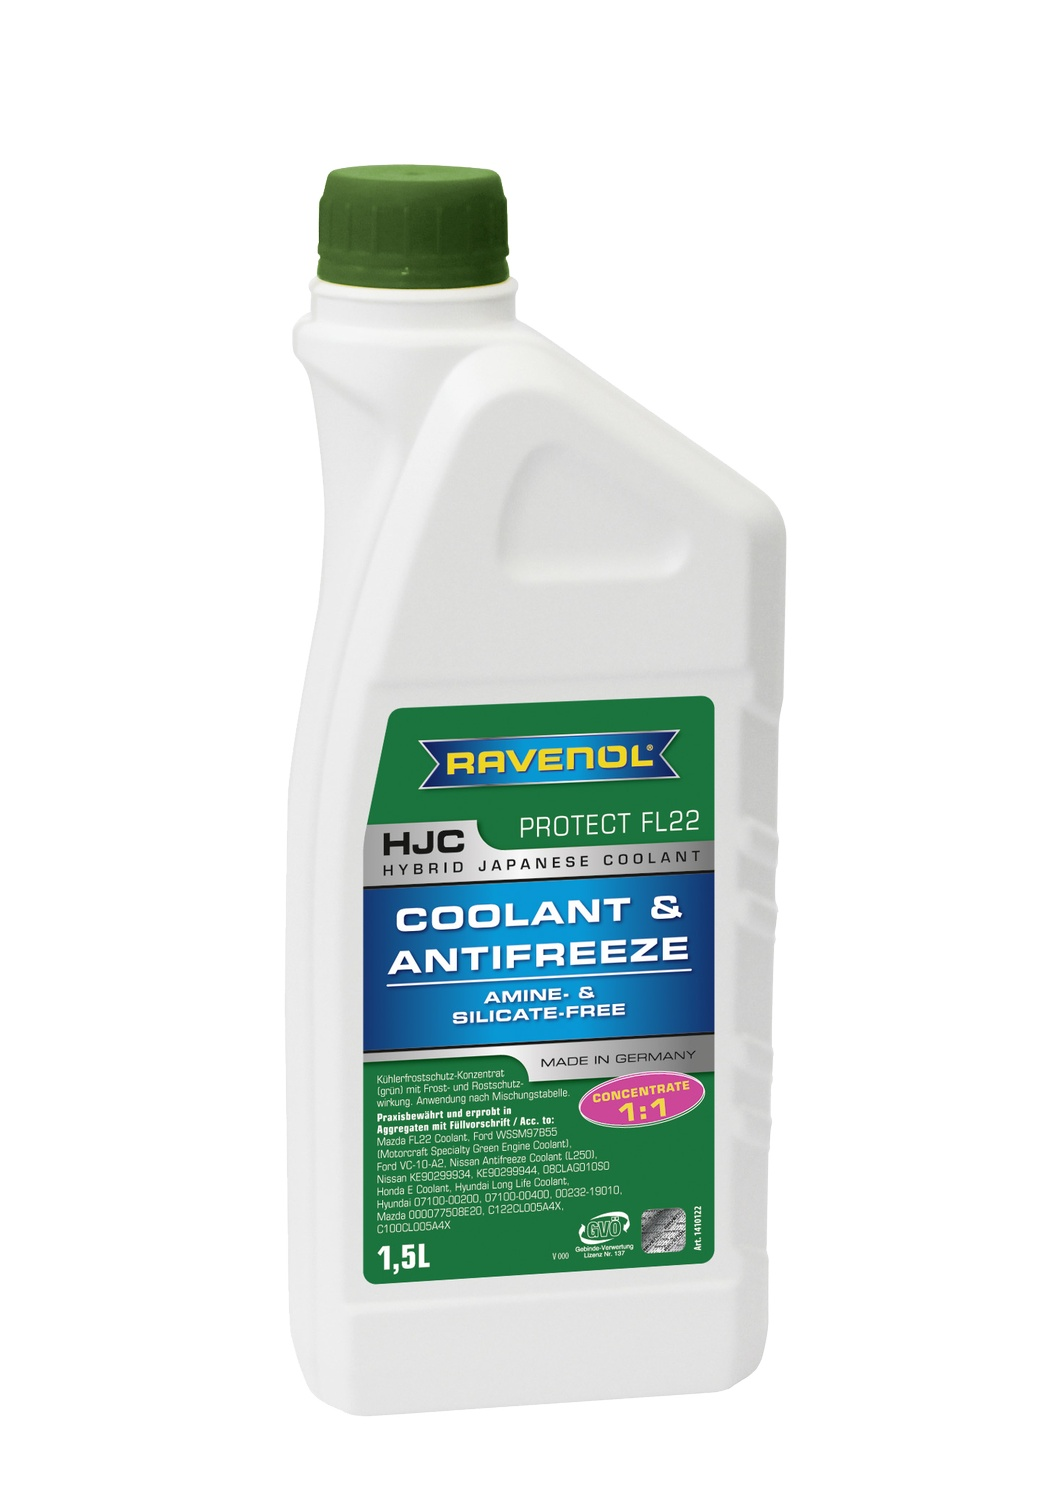 HJC Hybrid Japanese Coolant Concentrate